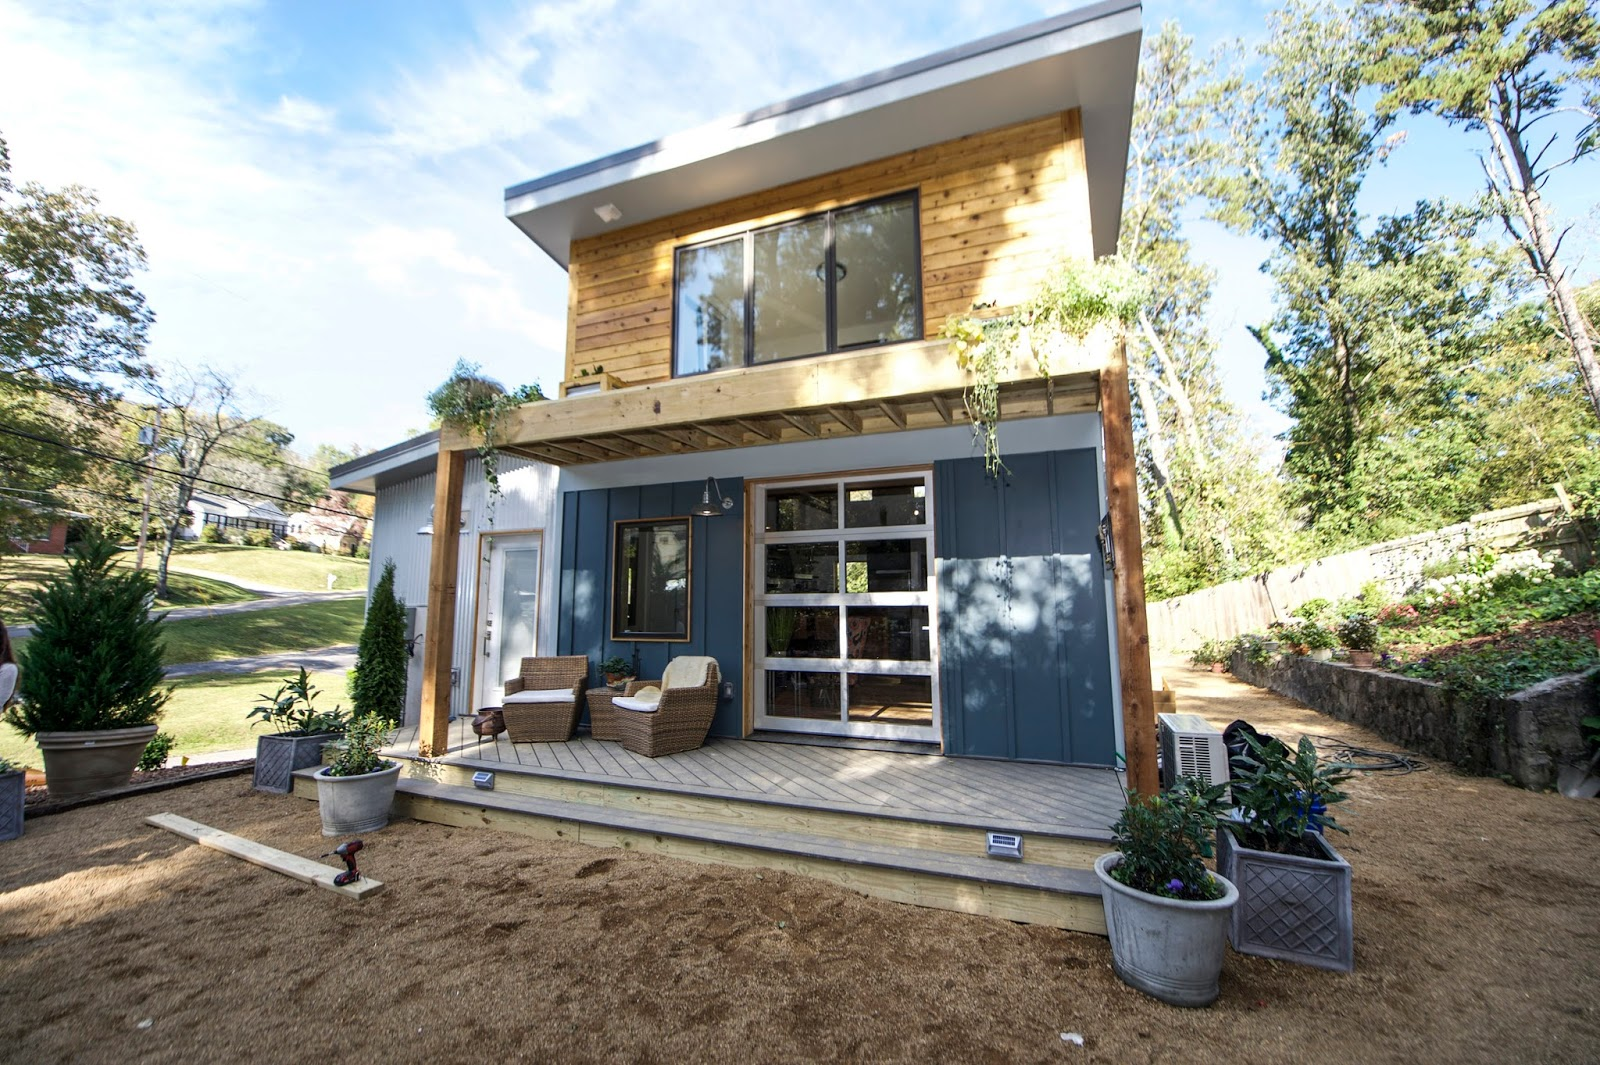 Tiny Home Designs: The Little Living Blog: The Urban Micro Home